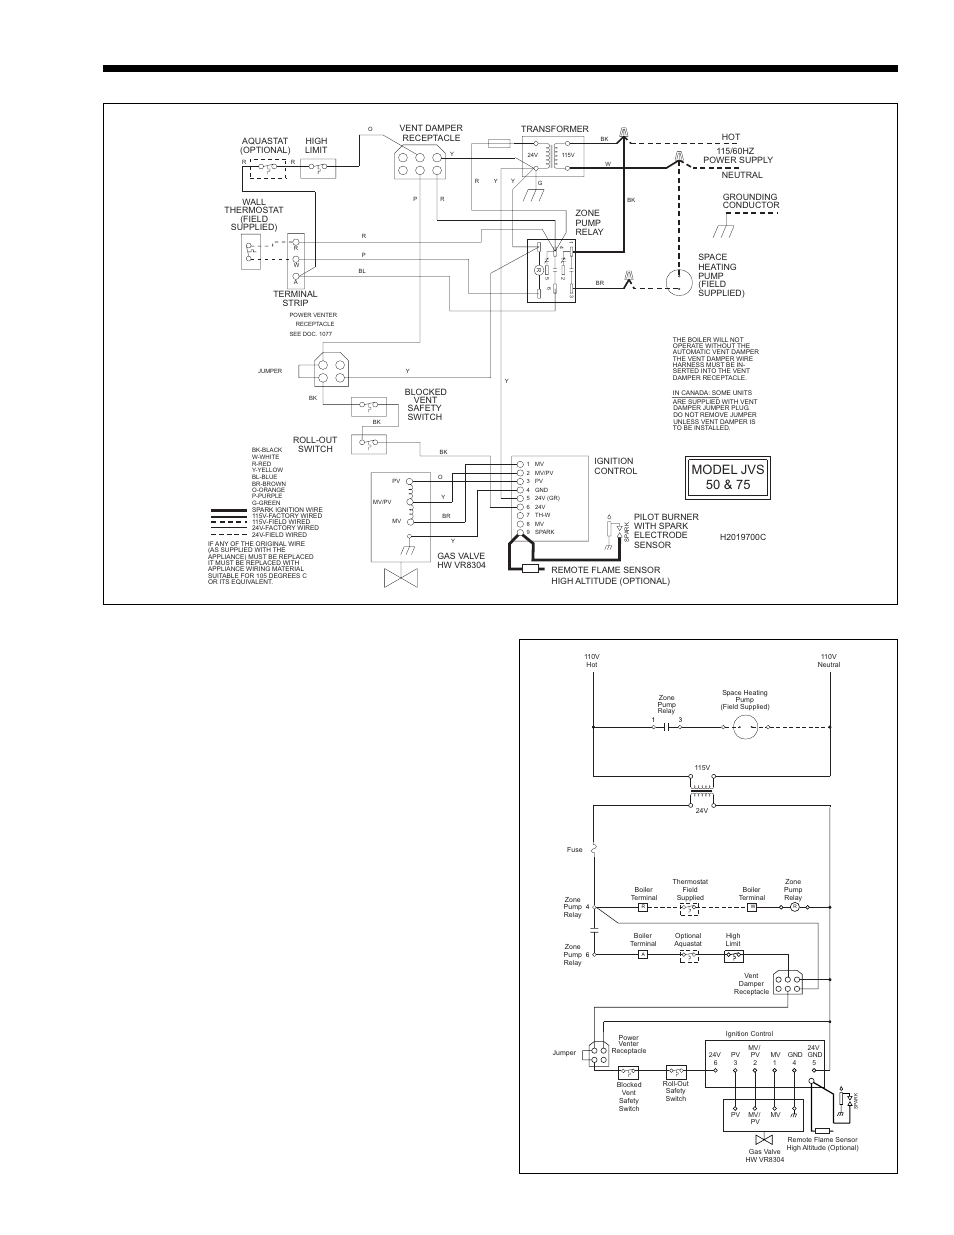 honeywell l4064b wiring diagram 31 wiring diagram images Fan Limit Control Switch Replacement Micro Limit Switch